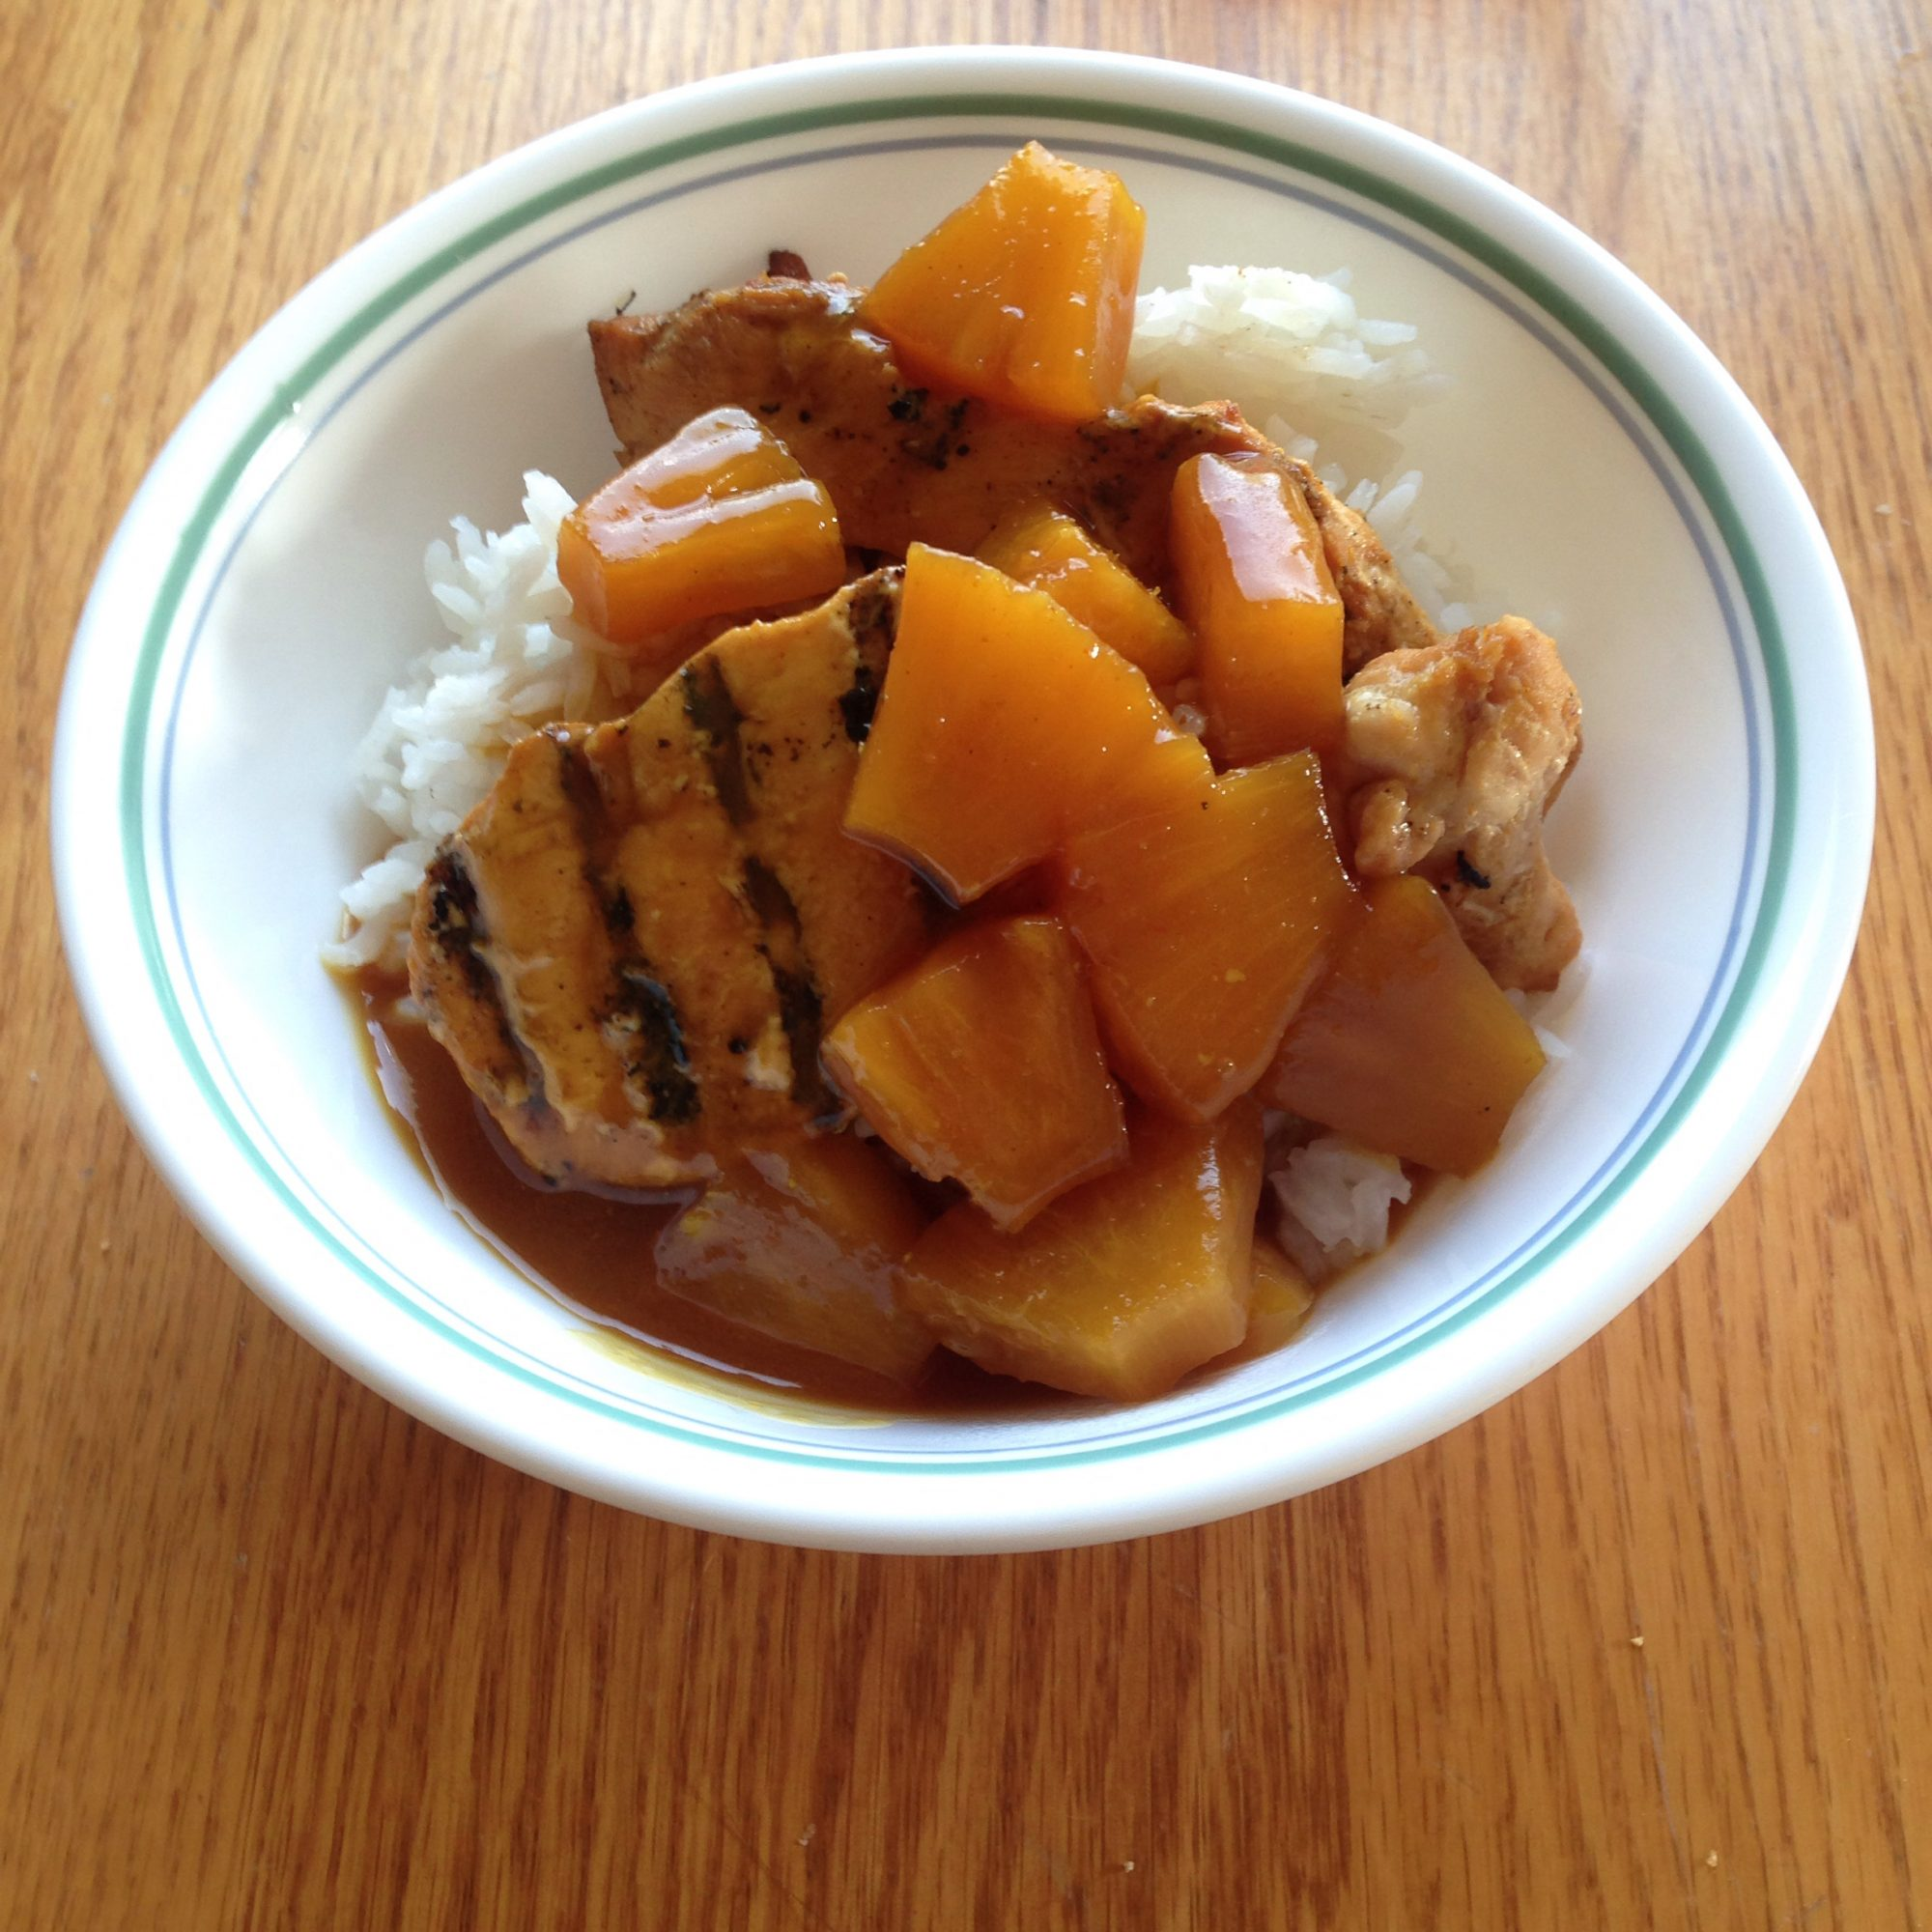 grilled chicken with pineapple, rice, and fruit glaze